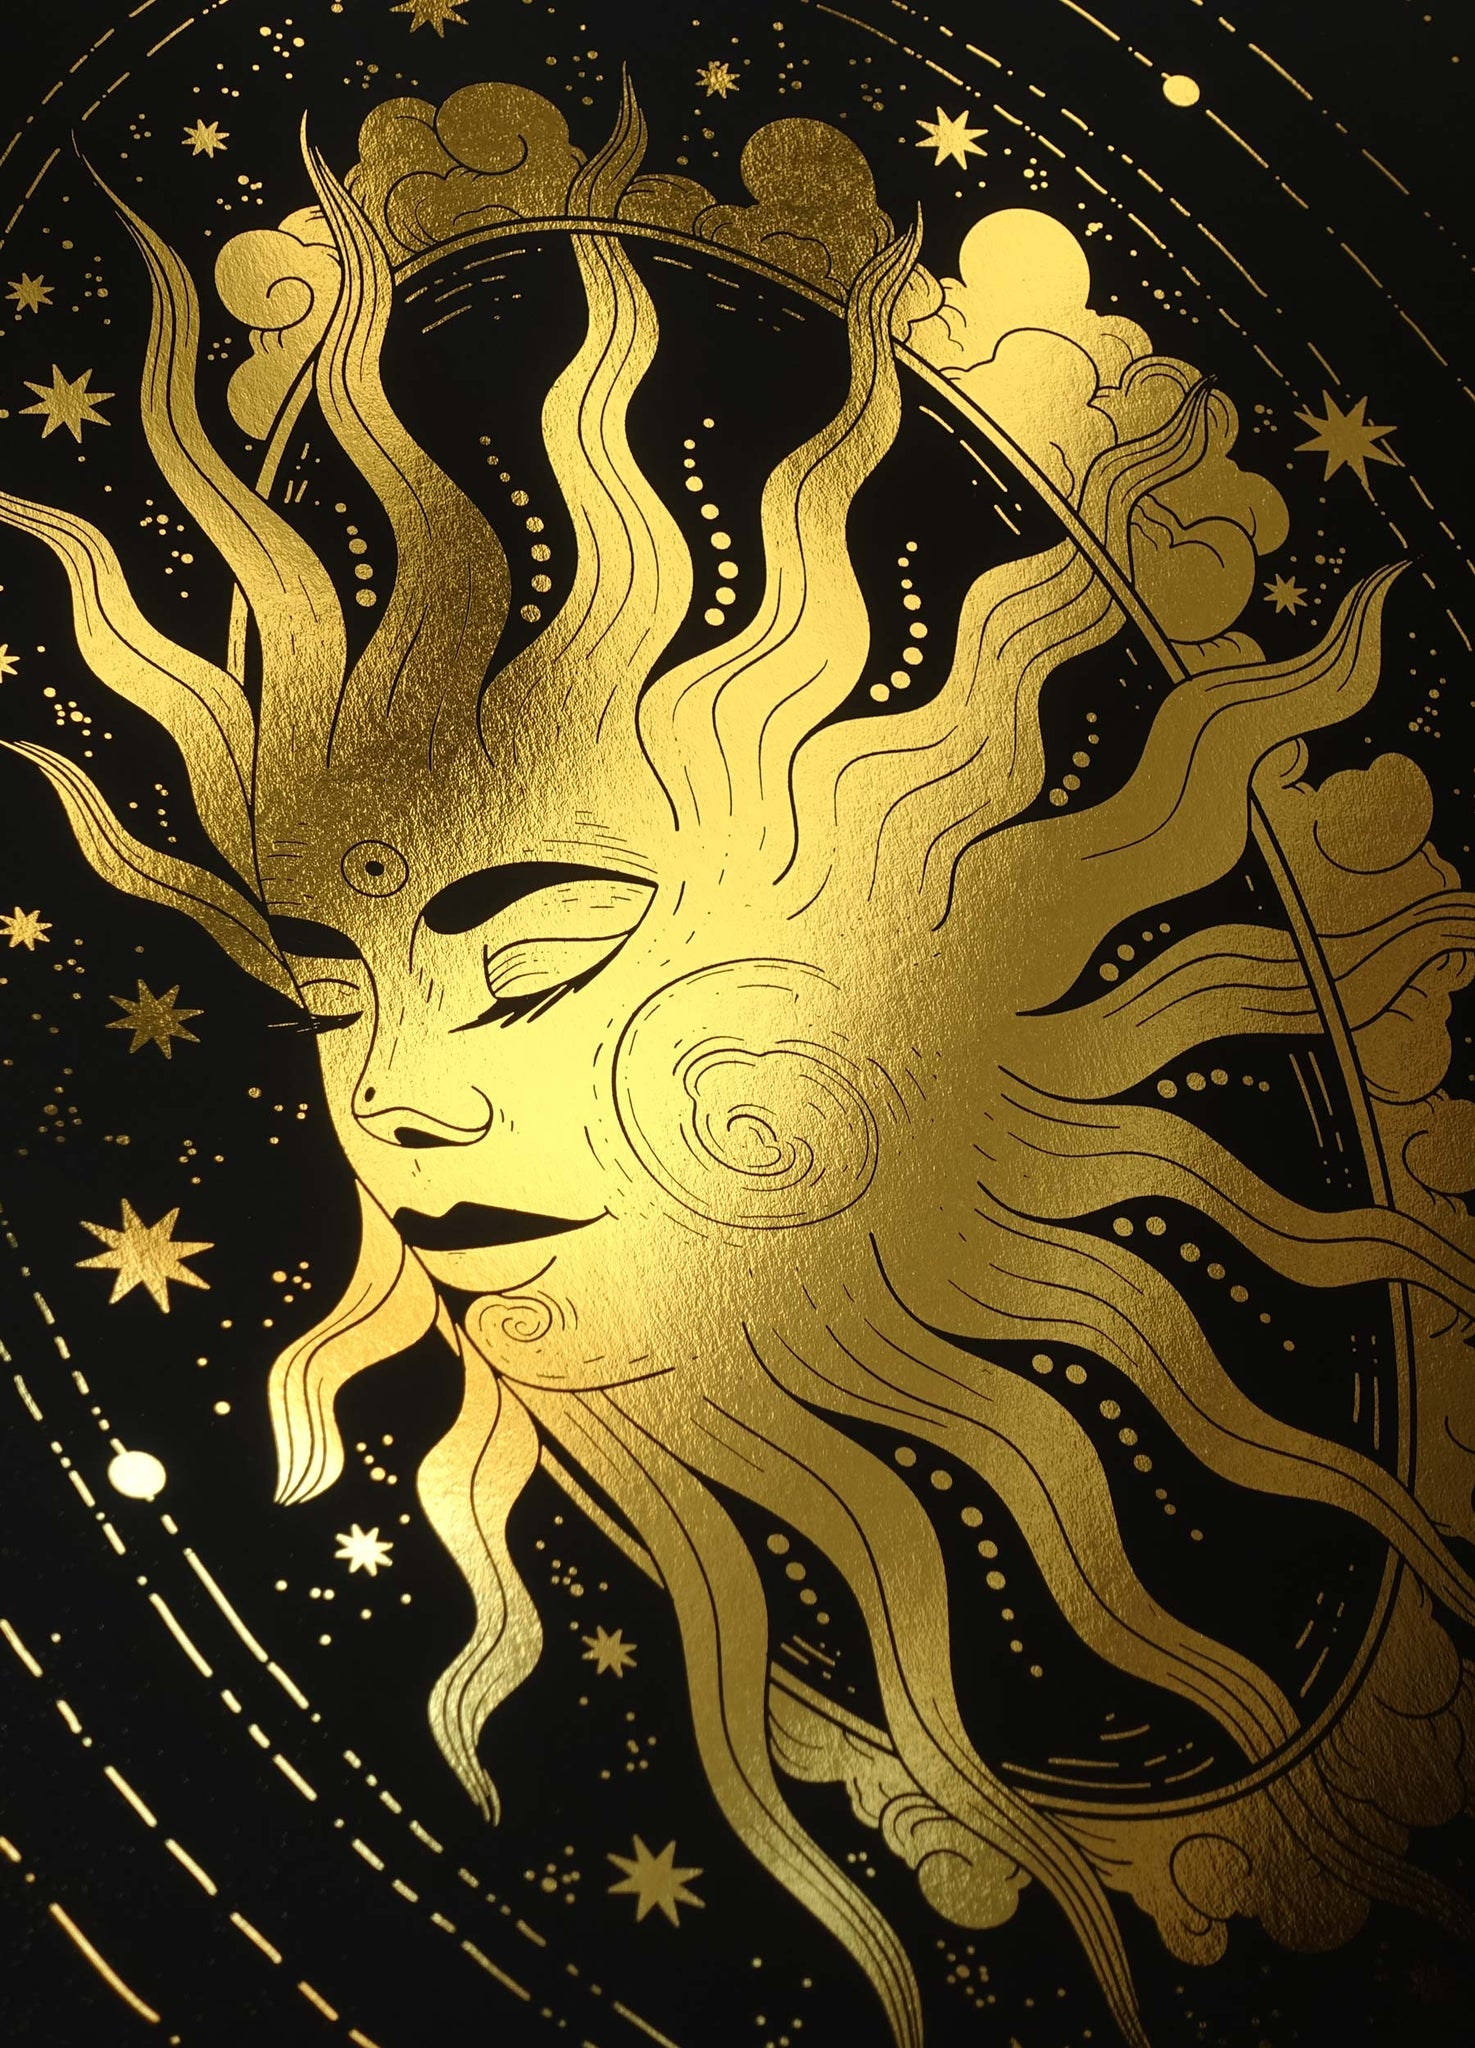 The Sun gold foil art print on black paper by Cocorrina & Co